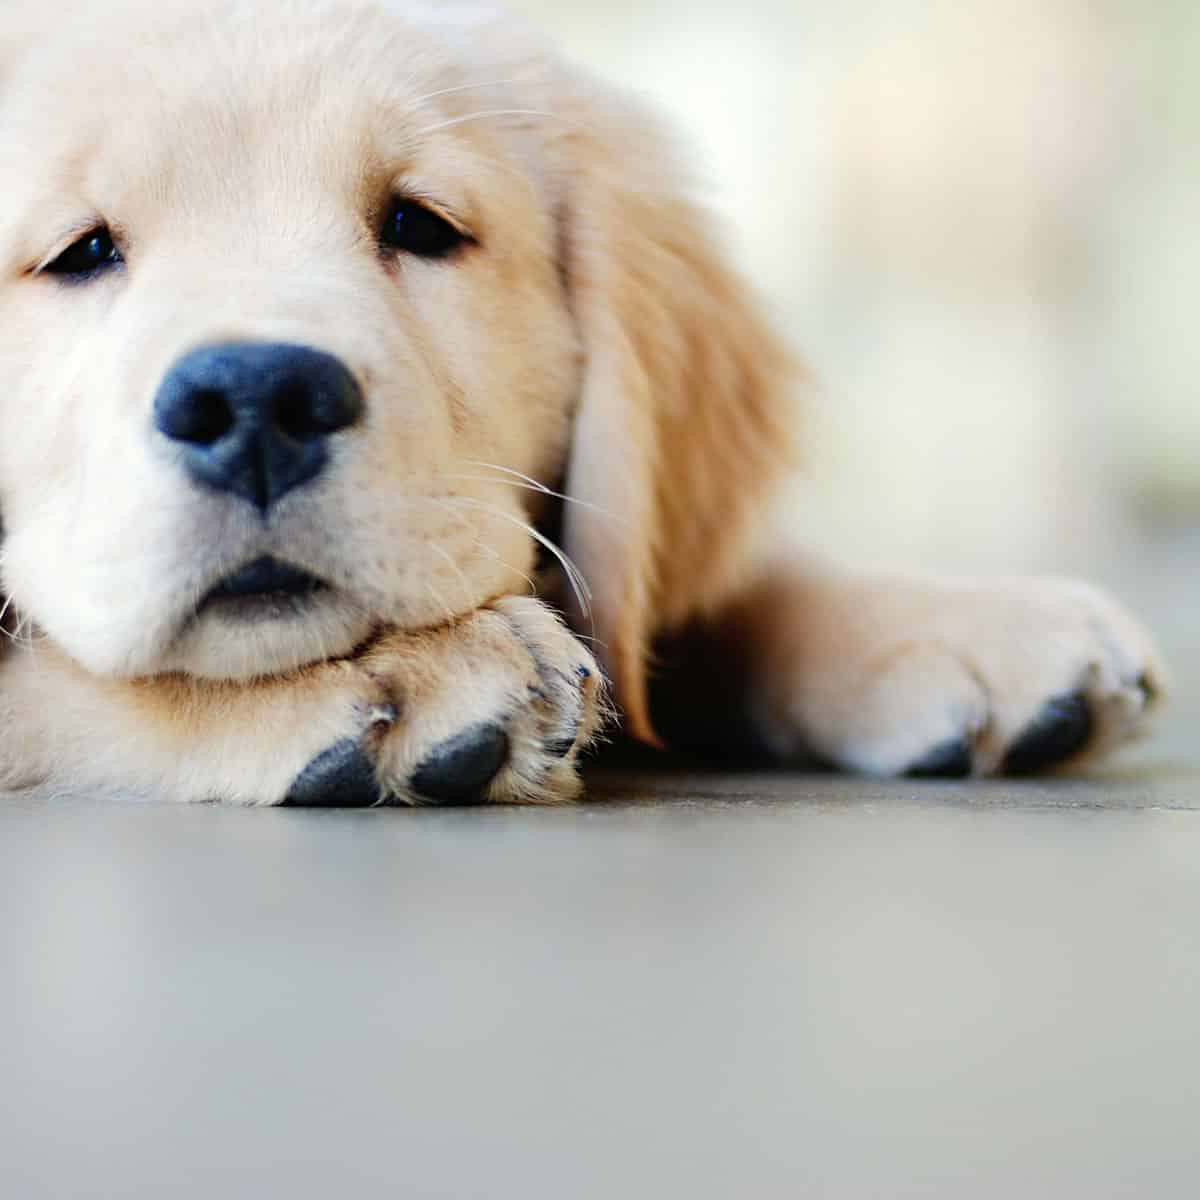 disinfect your home after dealing with dog mites